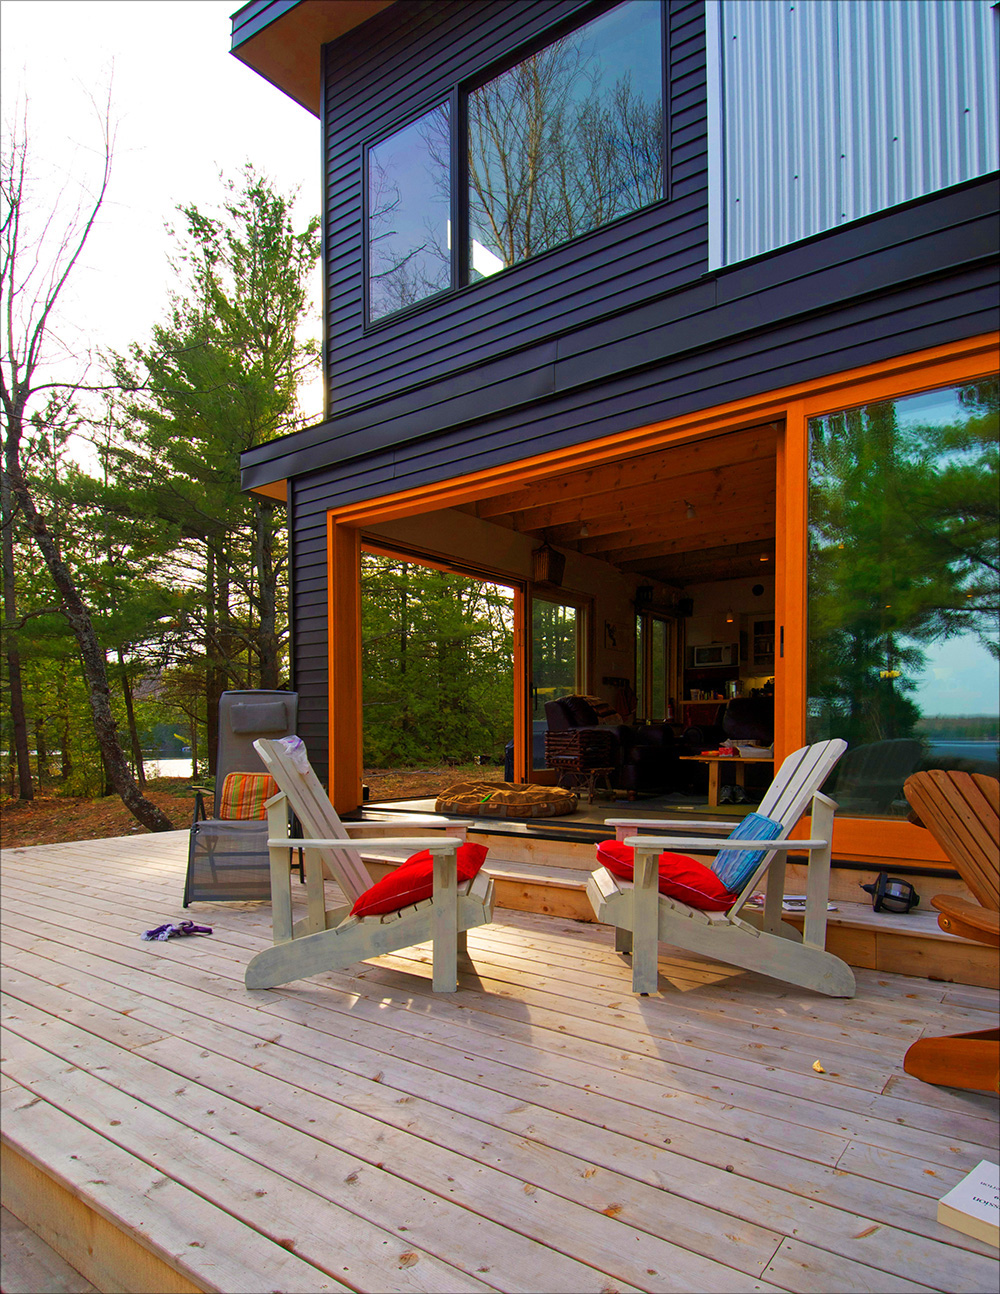 Cottage deck with large sliding door opening into the cottage interior